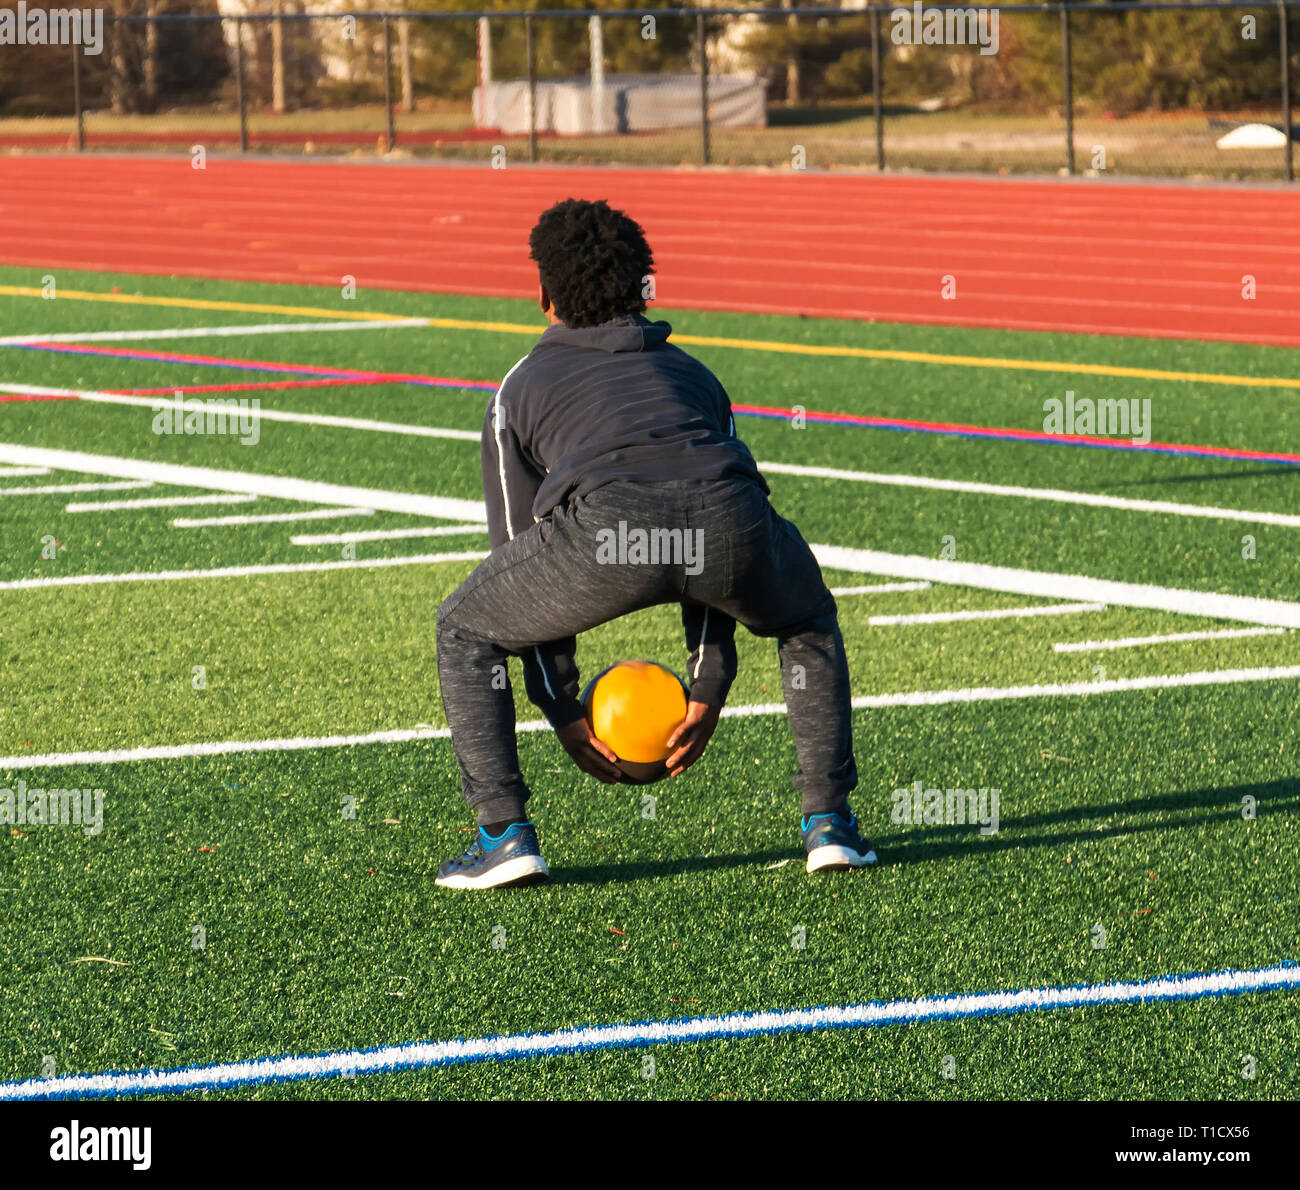 A high school track and field athlete is squatting down ready to throw a medicine ball over his head during speed and strength practice. - Stock Image